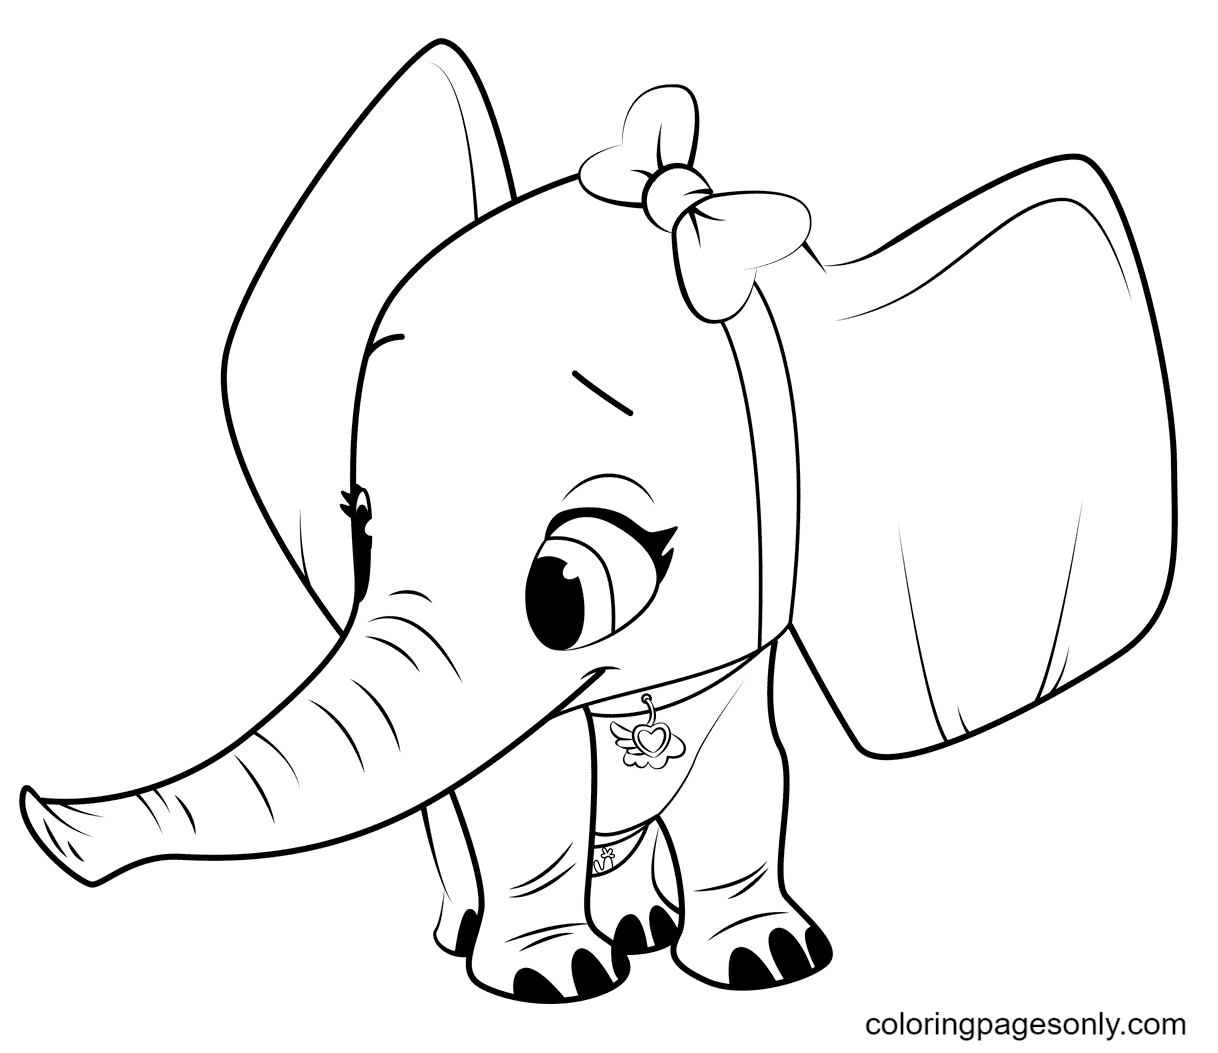 TOTS Elephant Coloring Page